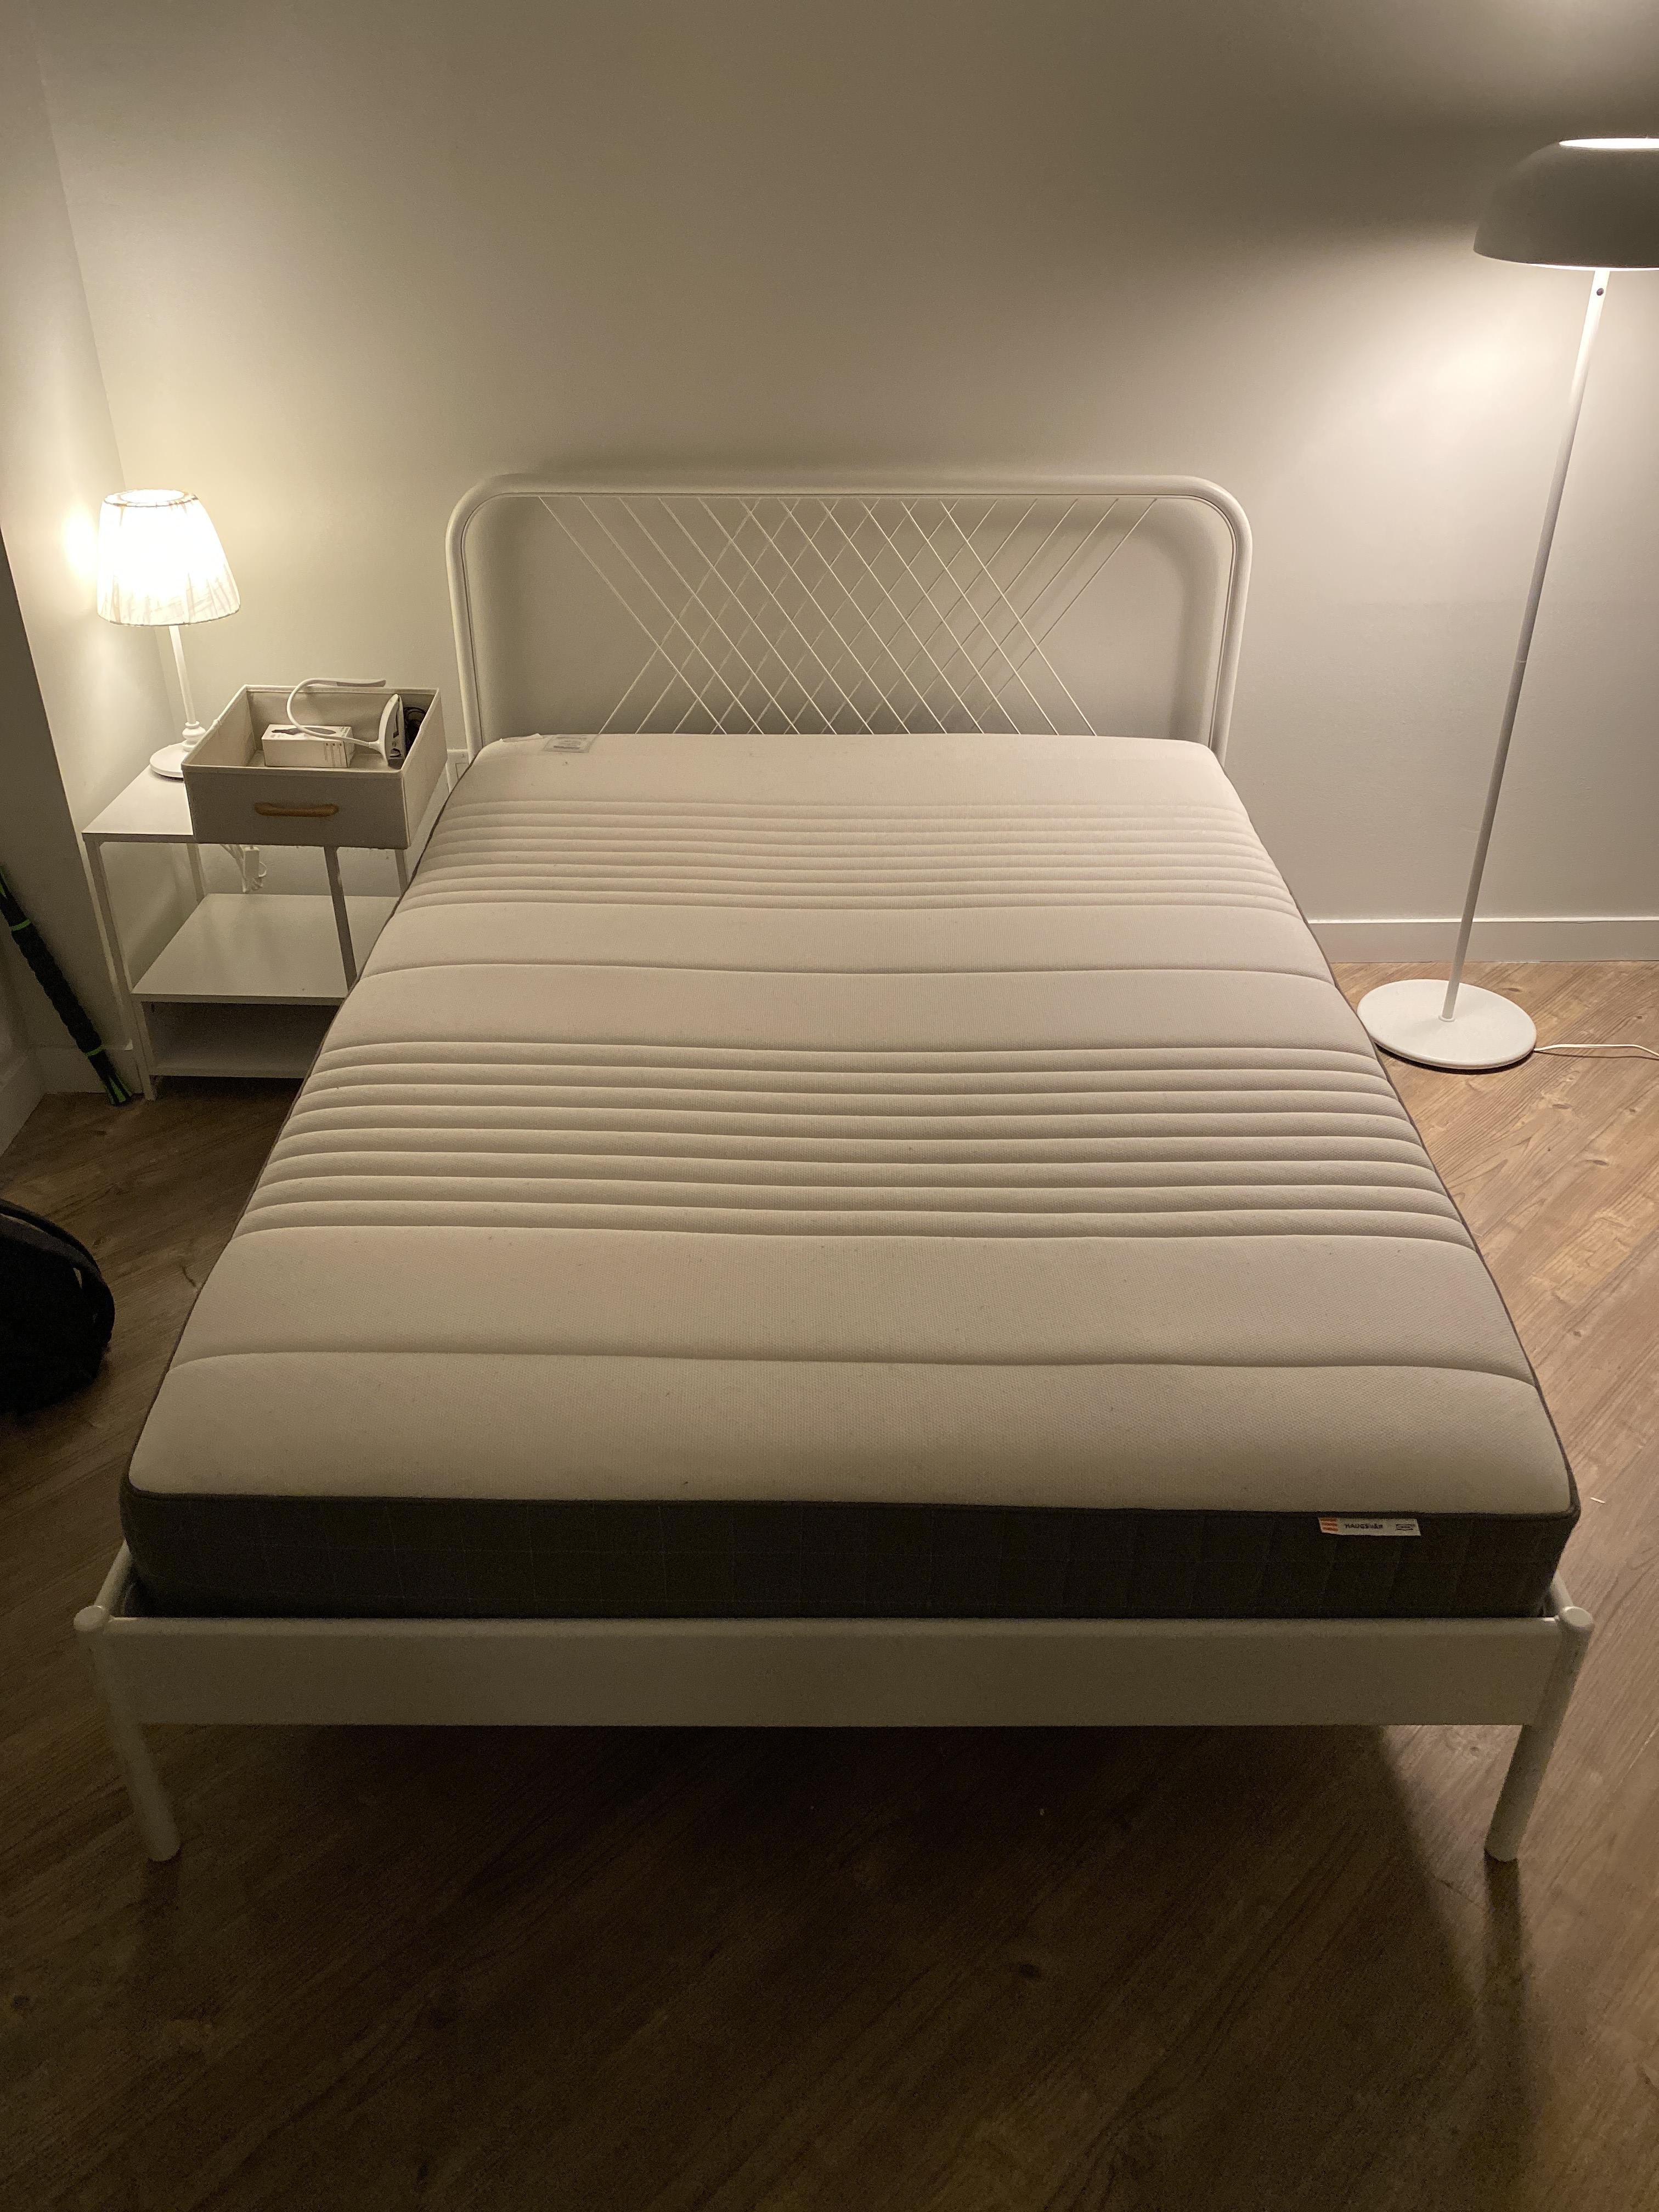 Ikea White Metal Full-Size Bed